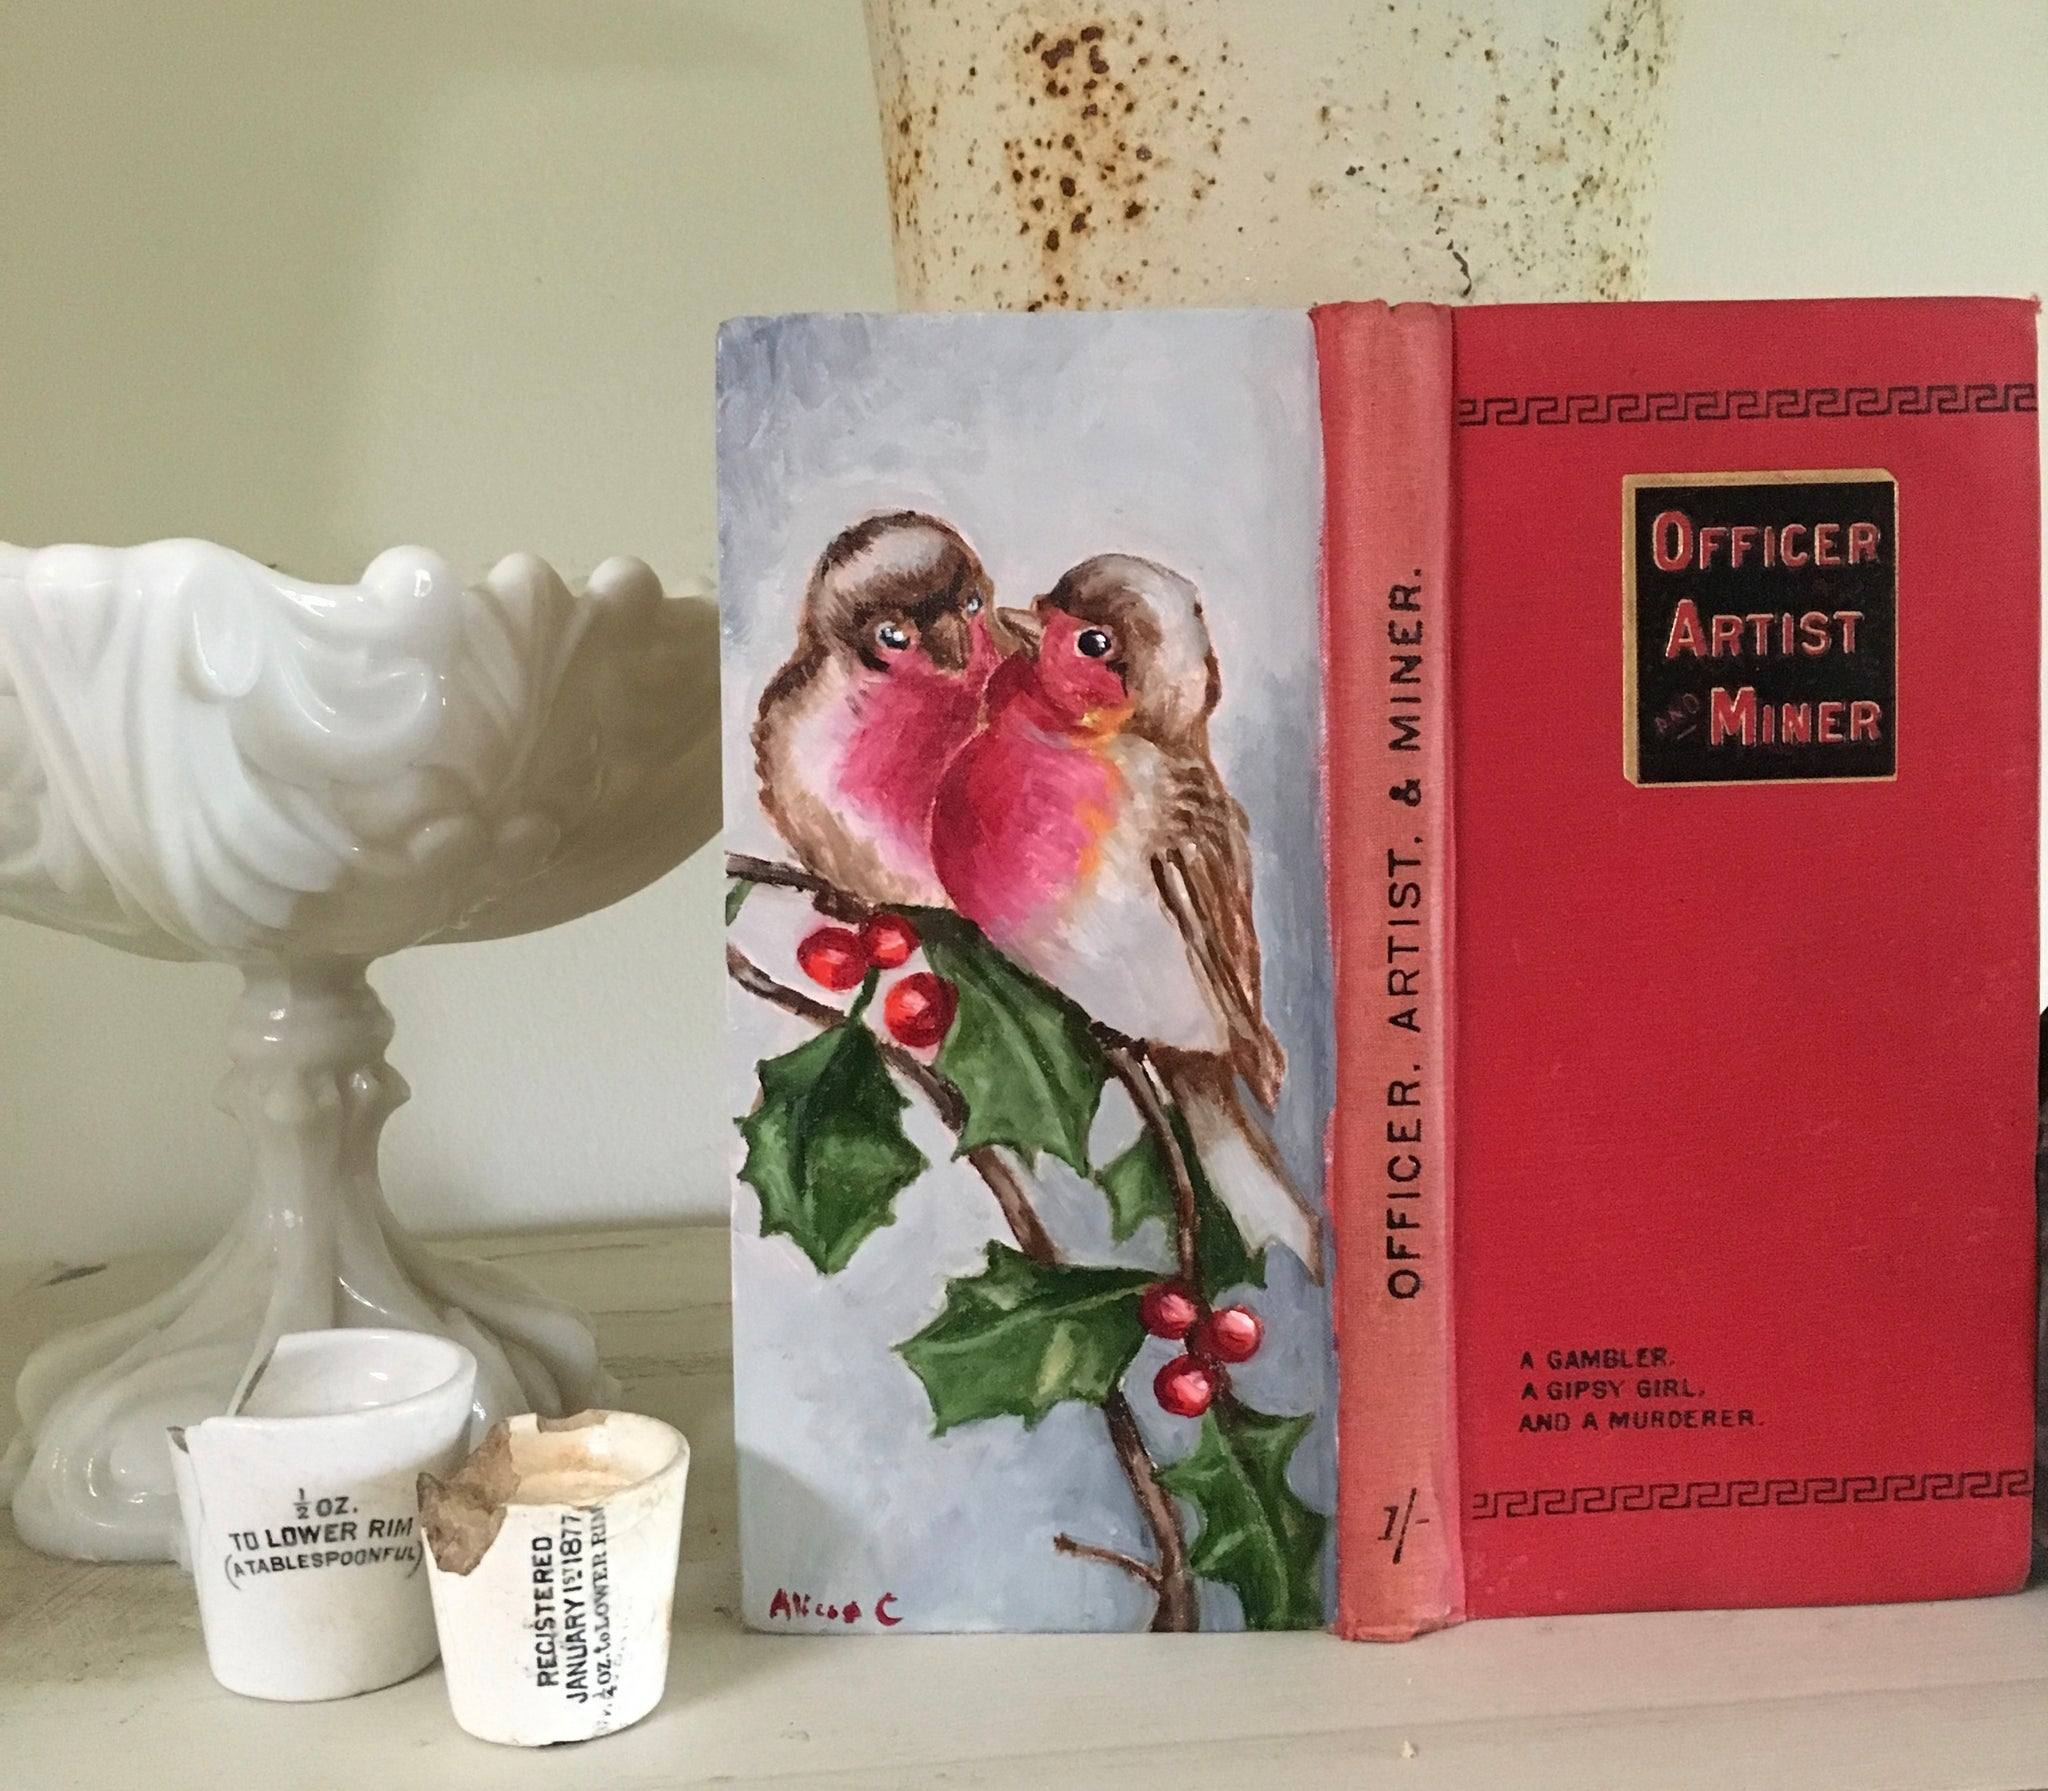 Birds with Holly & the Artist - Original Oil Book Painting